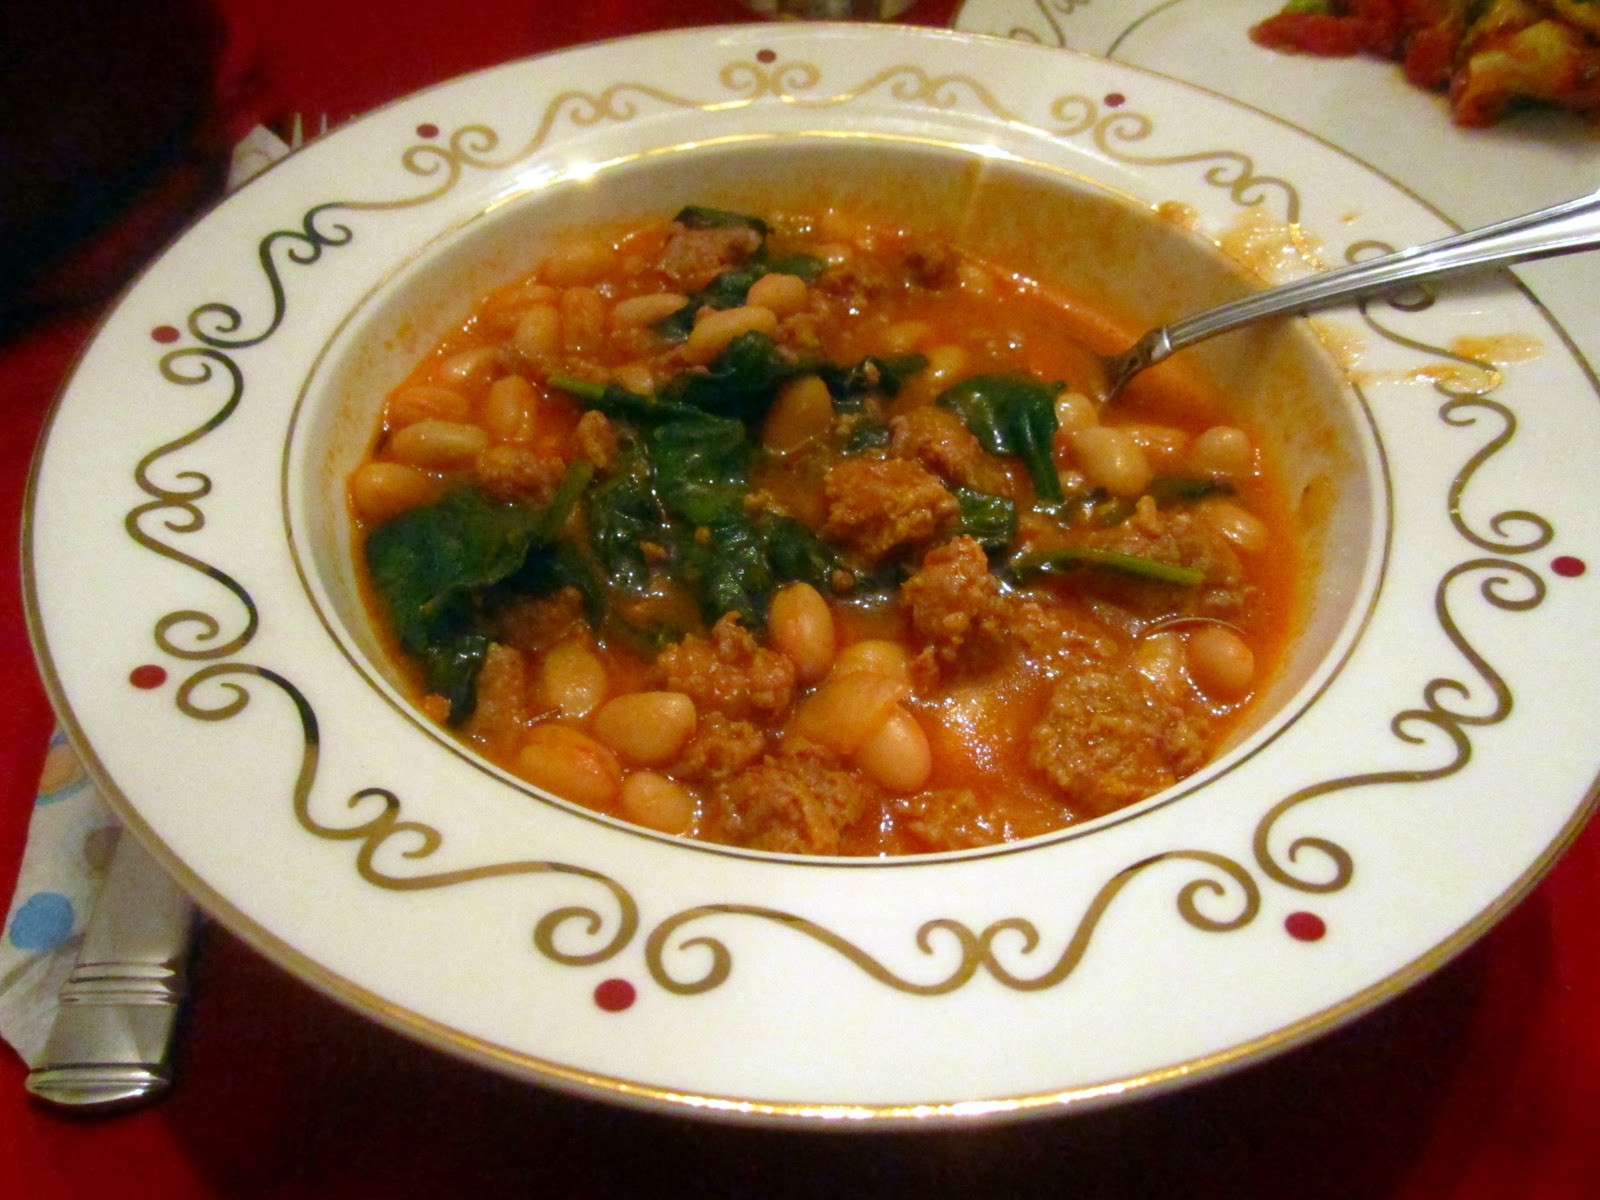 The Shepwell Kitchen: Hearty Sausage, White Bean and Spinach Soup